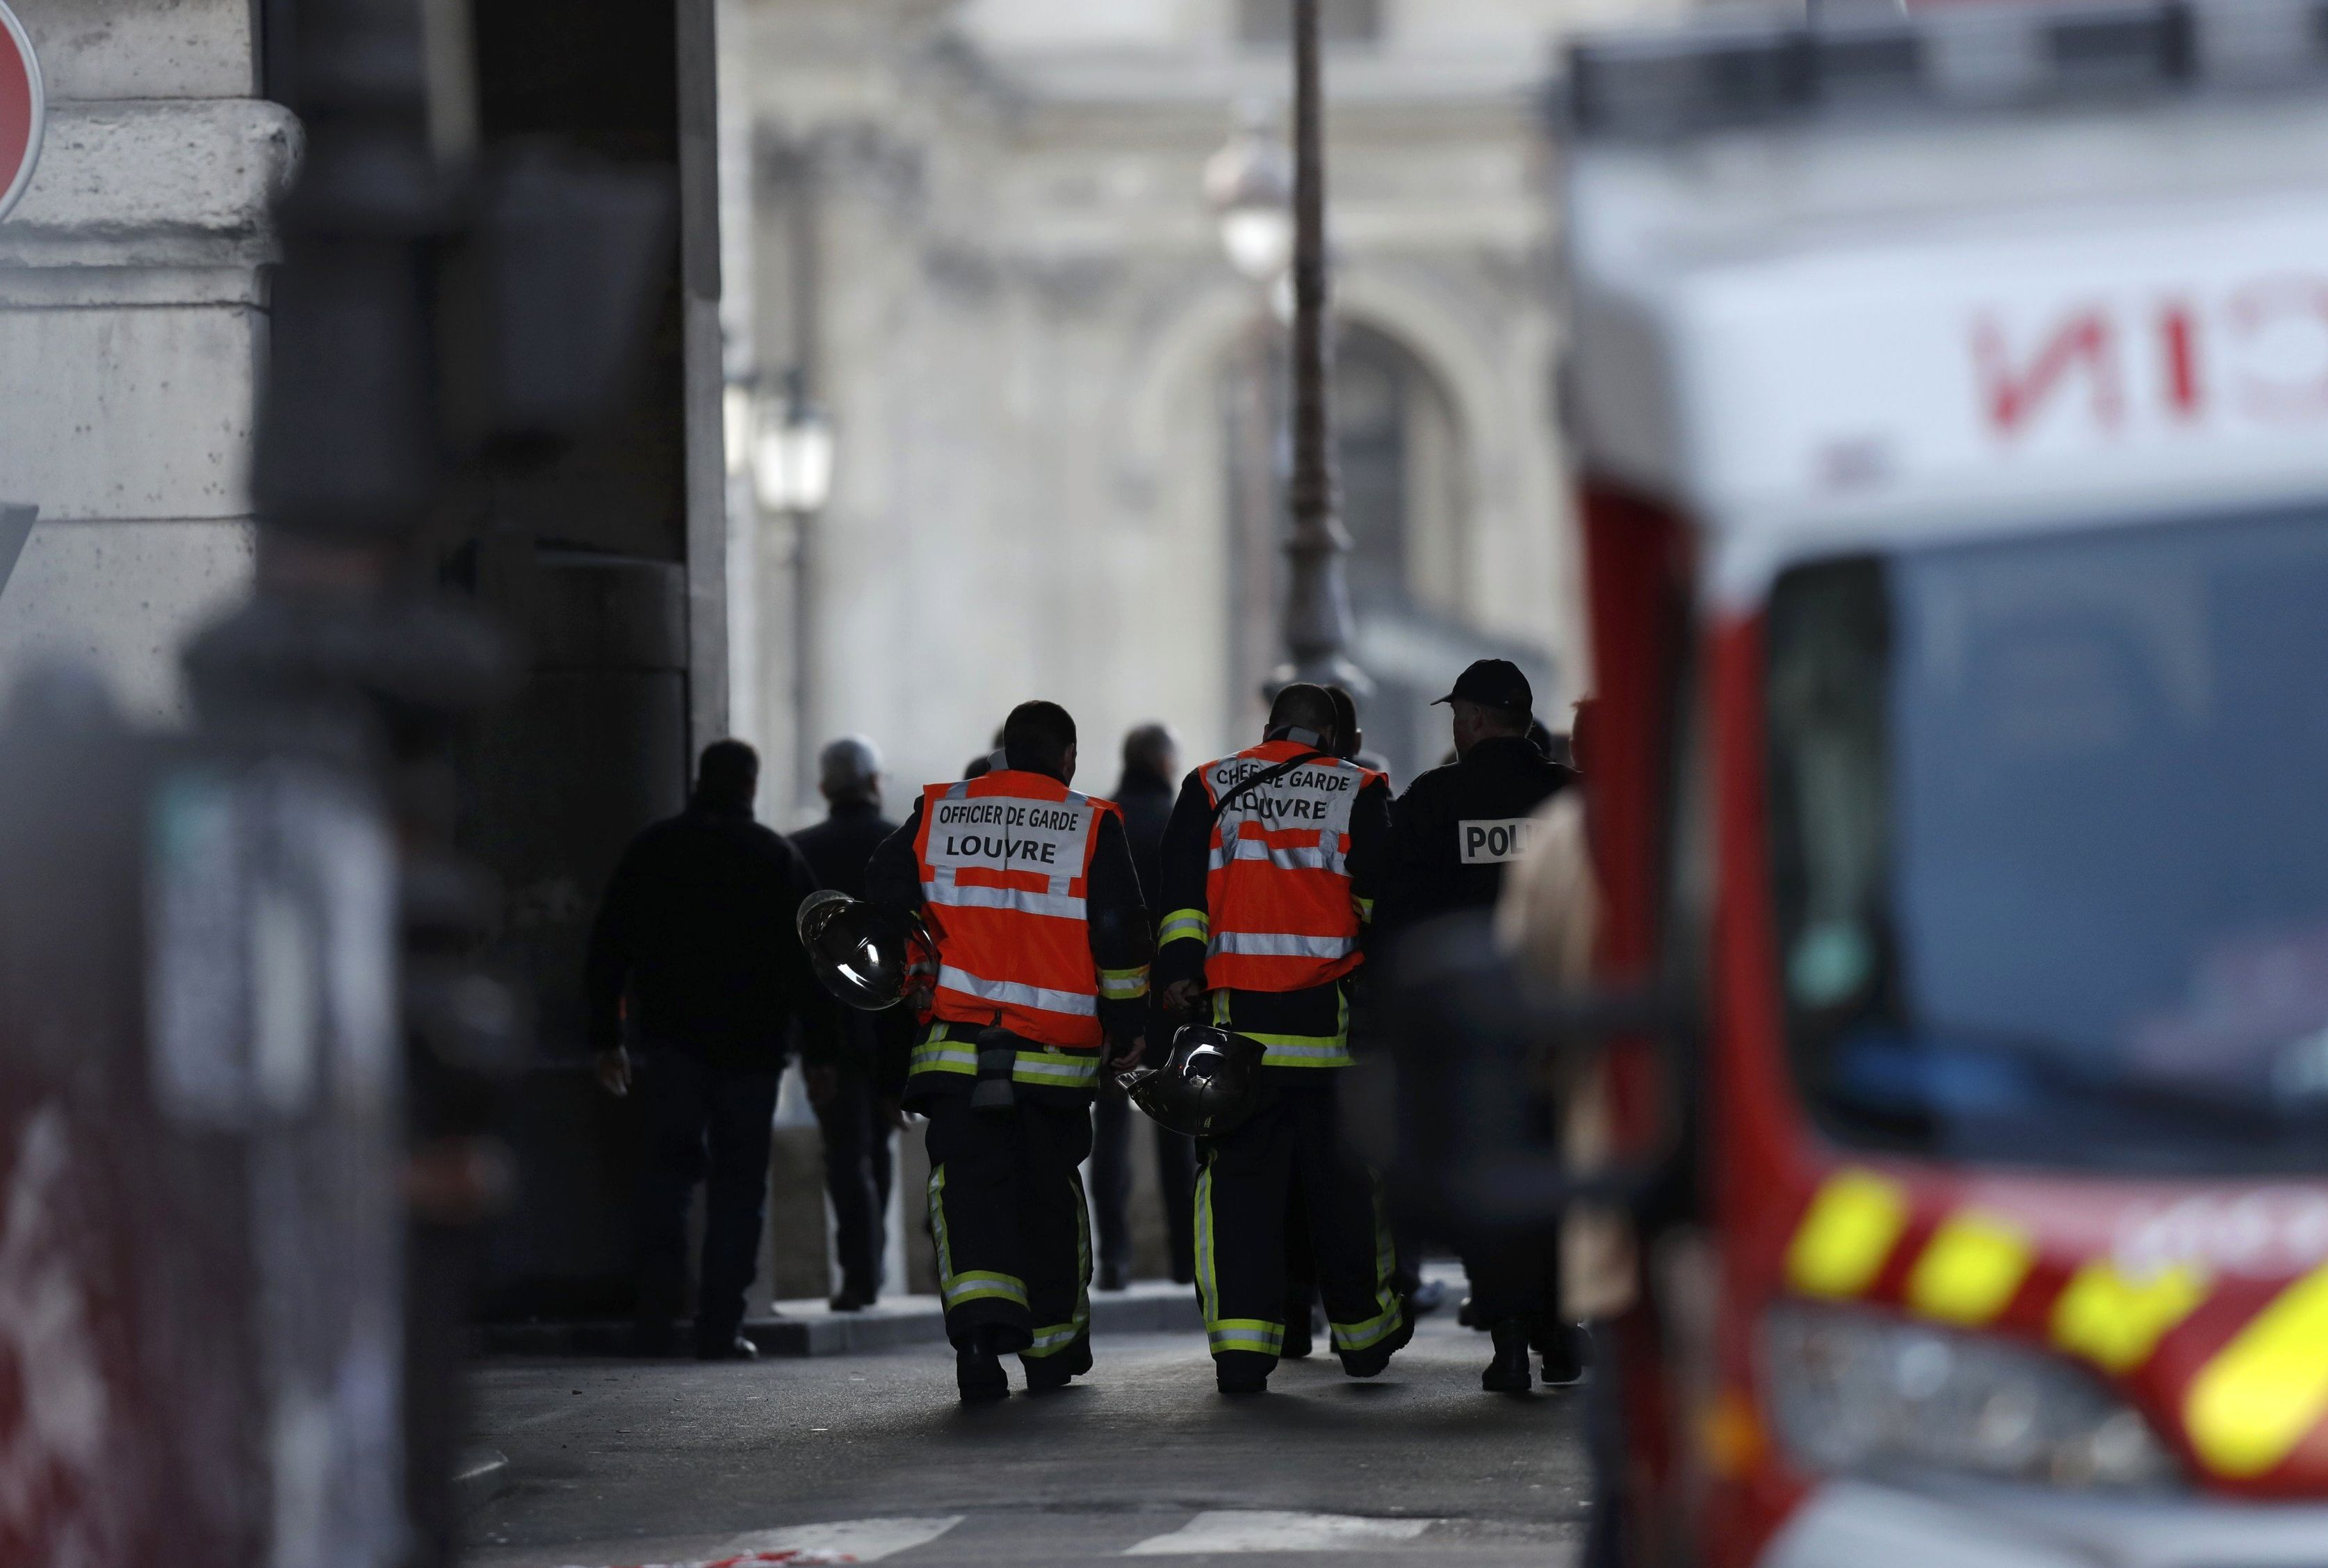 French firefighters and police are seen at the site near the Louvre Pyramid in Paris, France, February 3, 2017 after a French soldier shot and wounded a man armed with a knife after he tried to enter the Louvre museum in central Paris carrying a suitcase, police sources said.